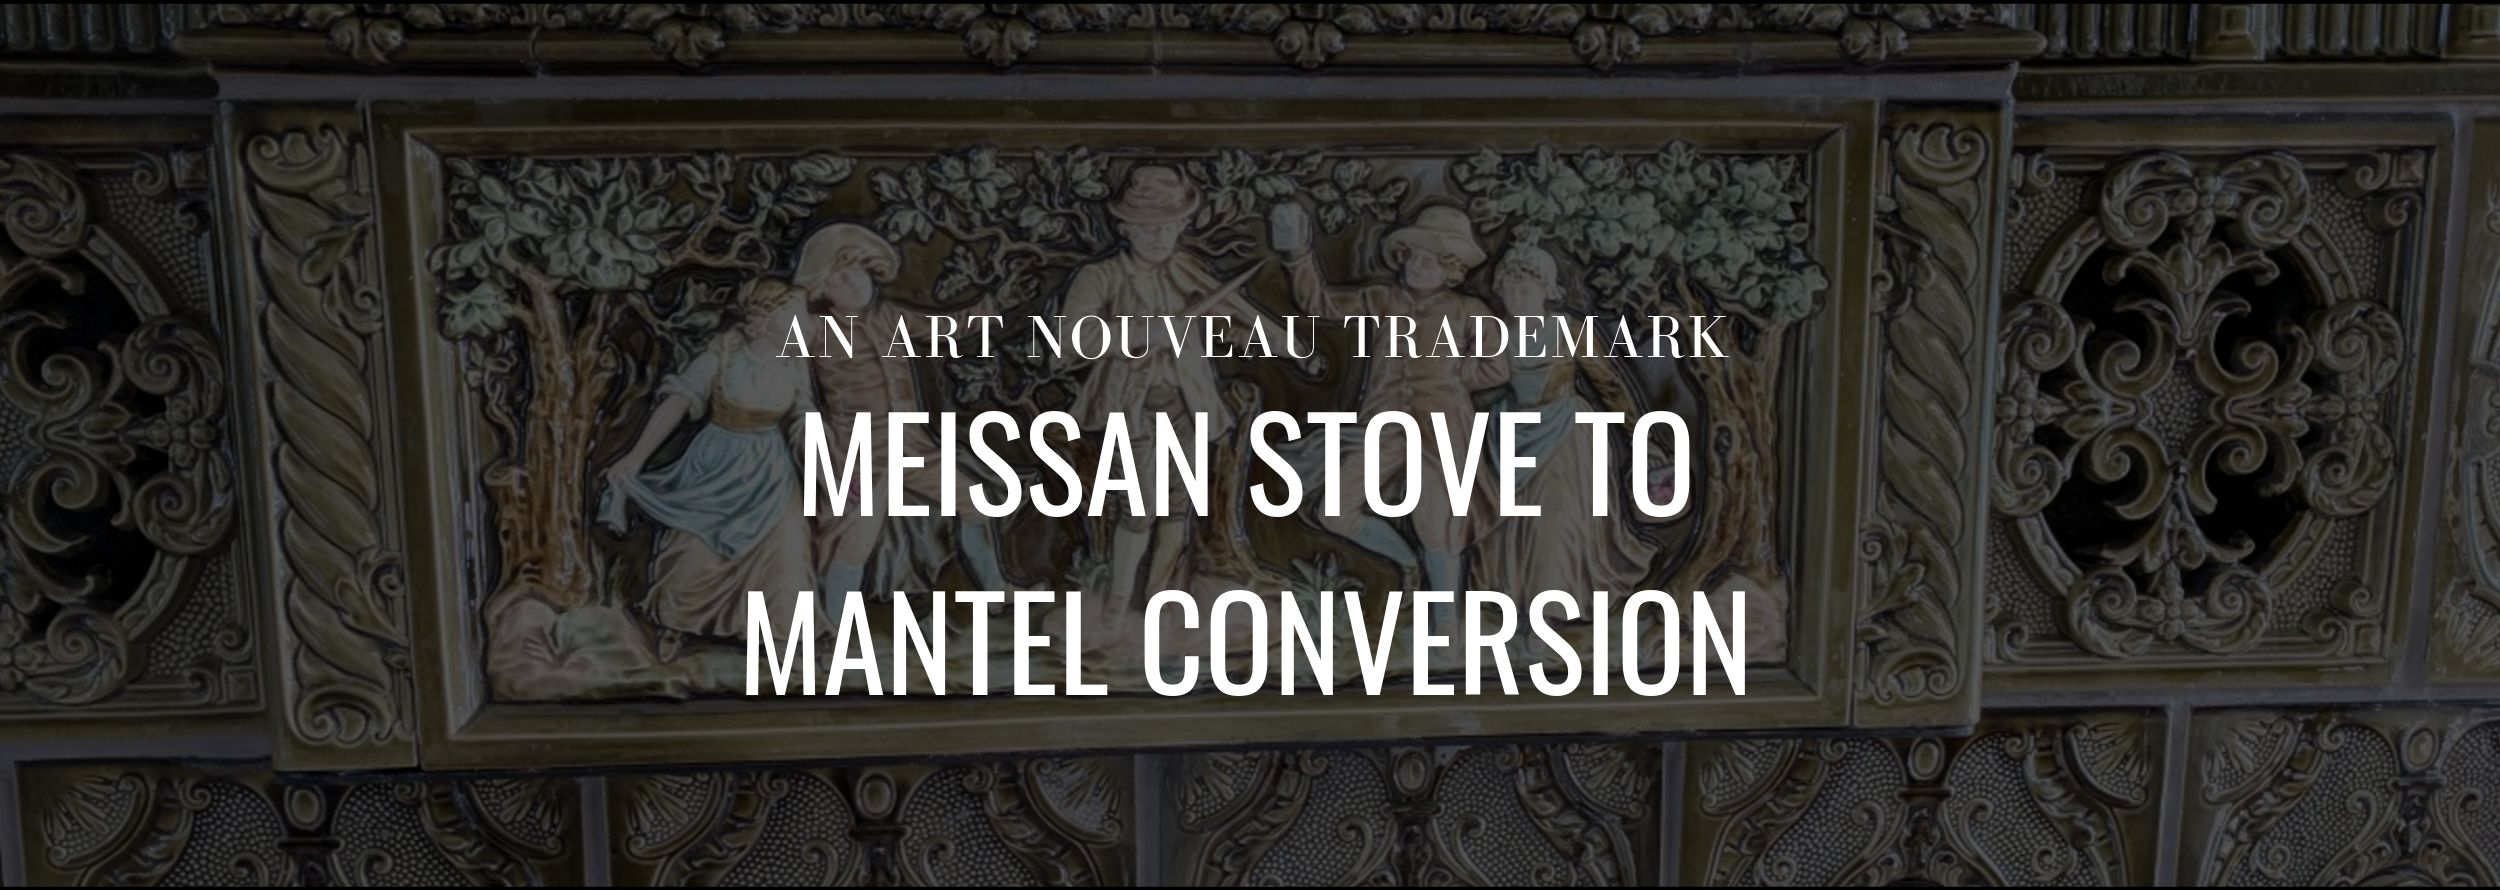 an-art-nouveau-trademark-meissan-stove-to-mantel-conversion-hpb